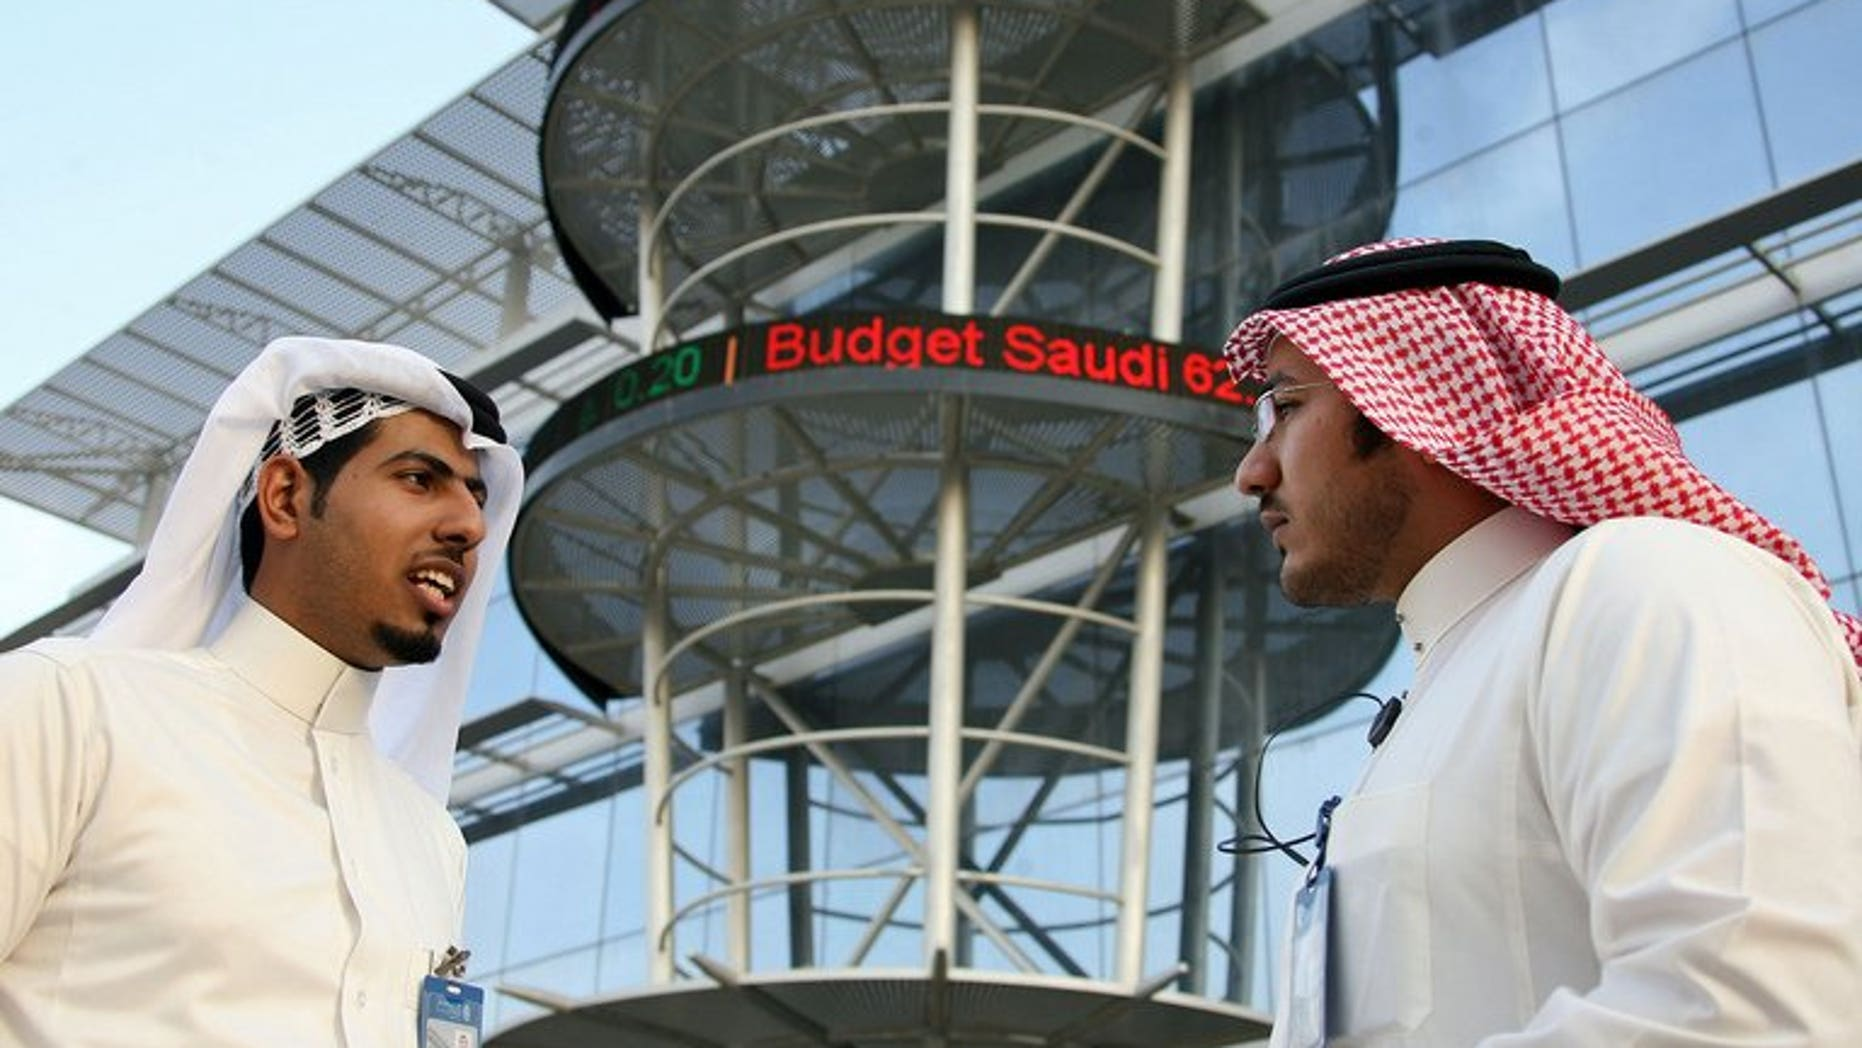 """Saudi men chat outside the Saudi Stock Exchange in Riyadh on December 5, 2009. Oil powerhouse Saudi Arabia is switching its weekend to Friday-Saturday to better serve its economy and """"international commitments,"""" the official SPA news agency reported on Sunday quoting a royal decree."""